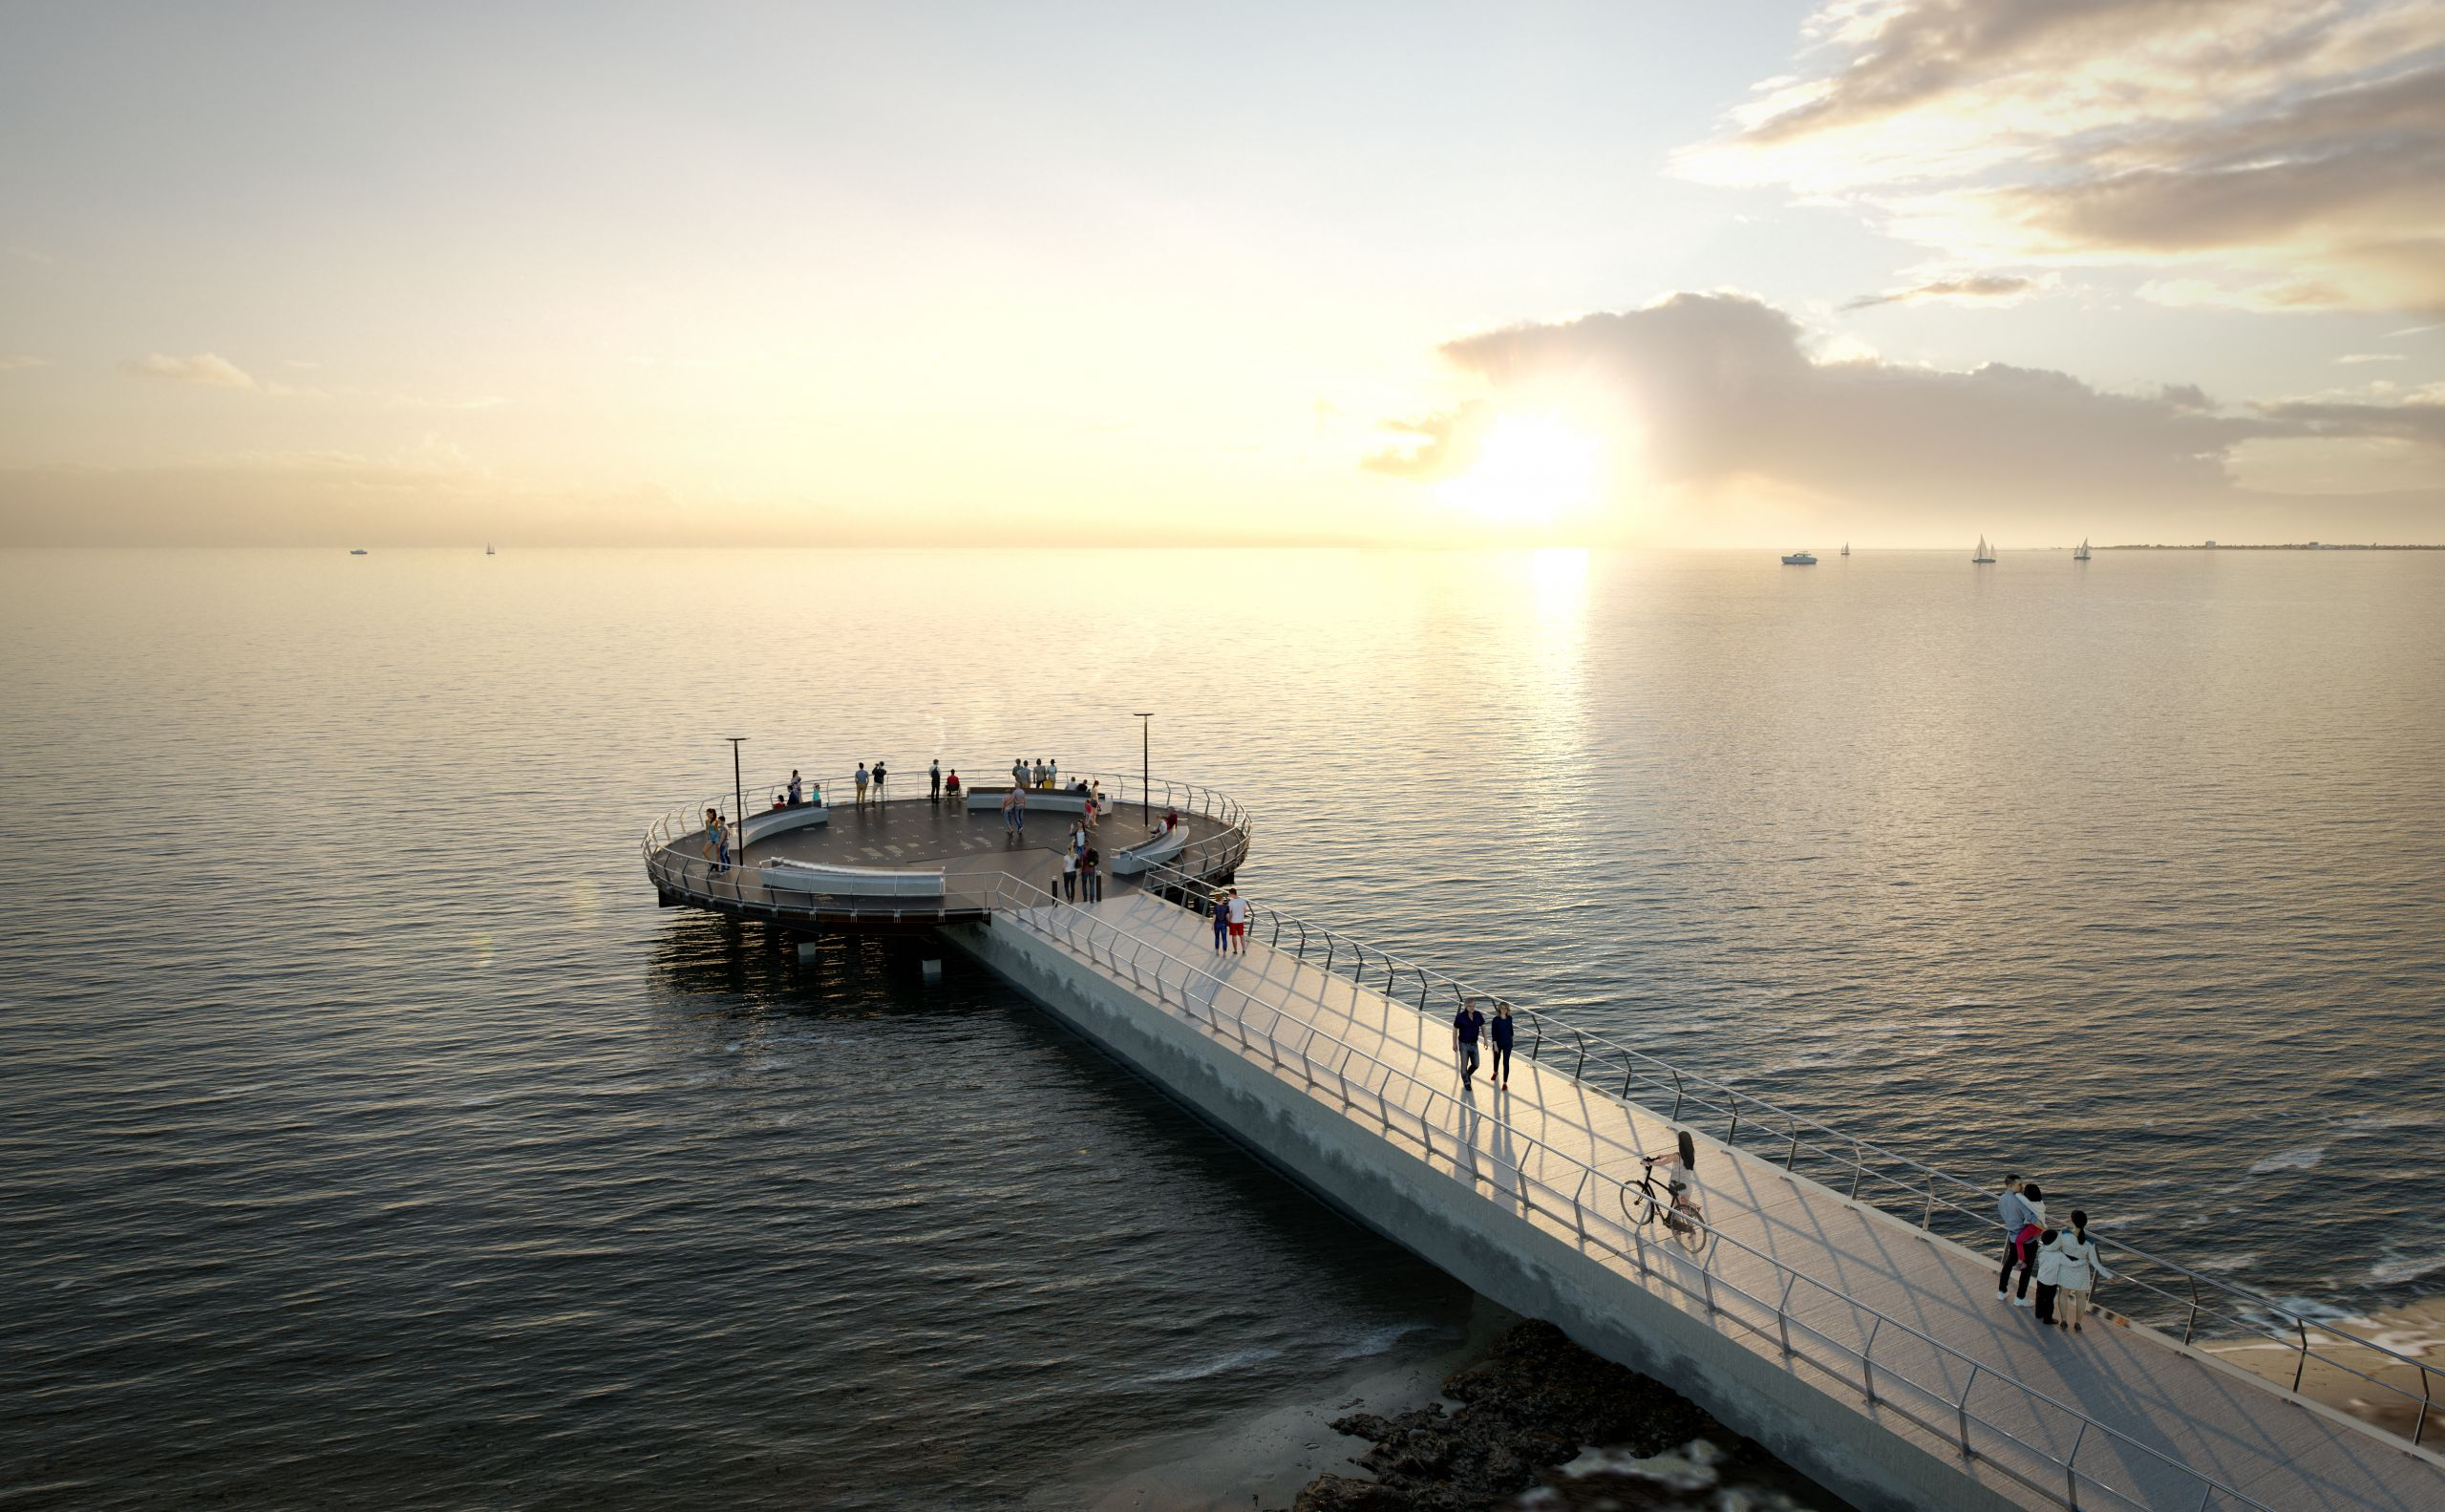 Artist impression of viewing platform that overlooks St Kilda beach